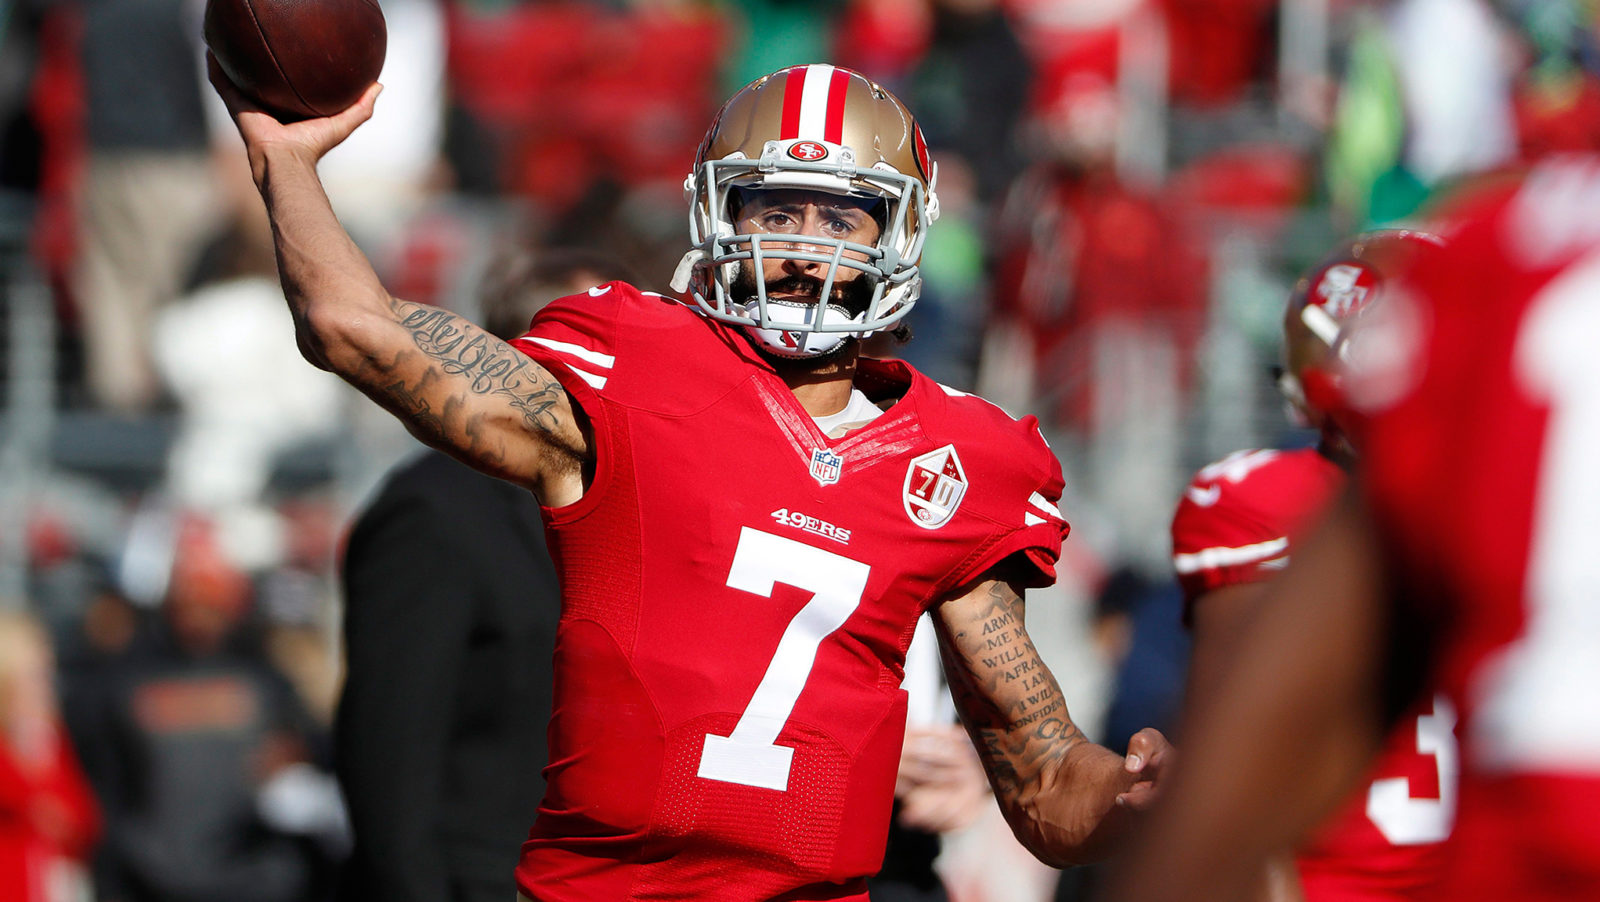 Colin Kaepernick does not want to play in CFL despite interest